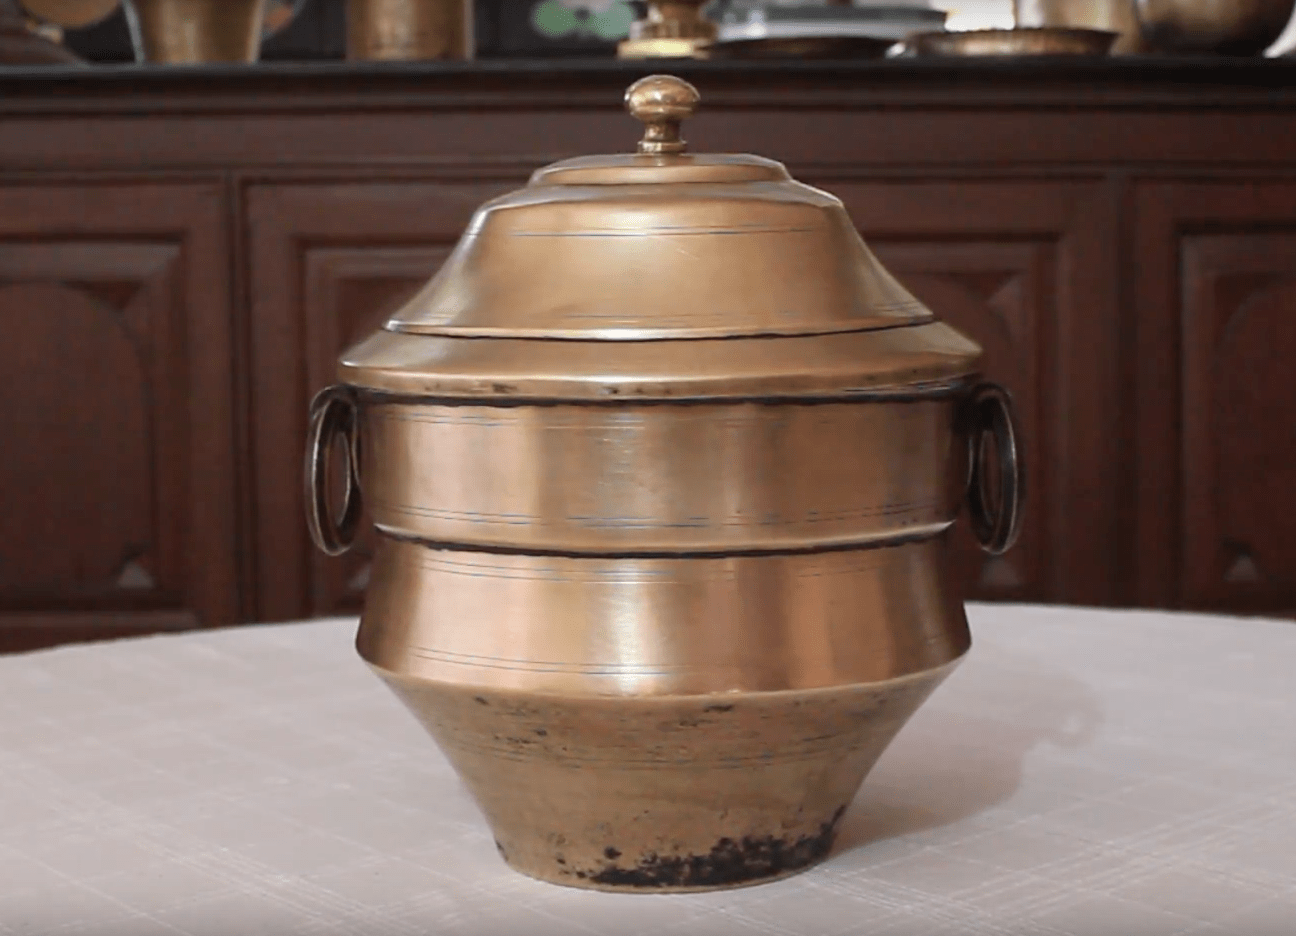 Antique Brass Idli Steamer (Idli Patra)